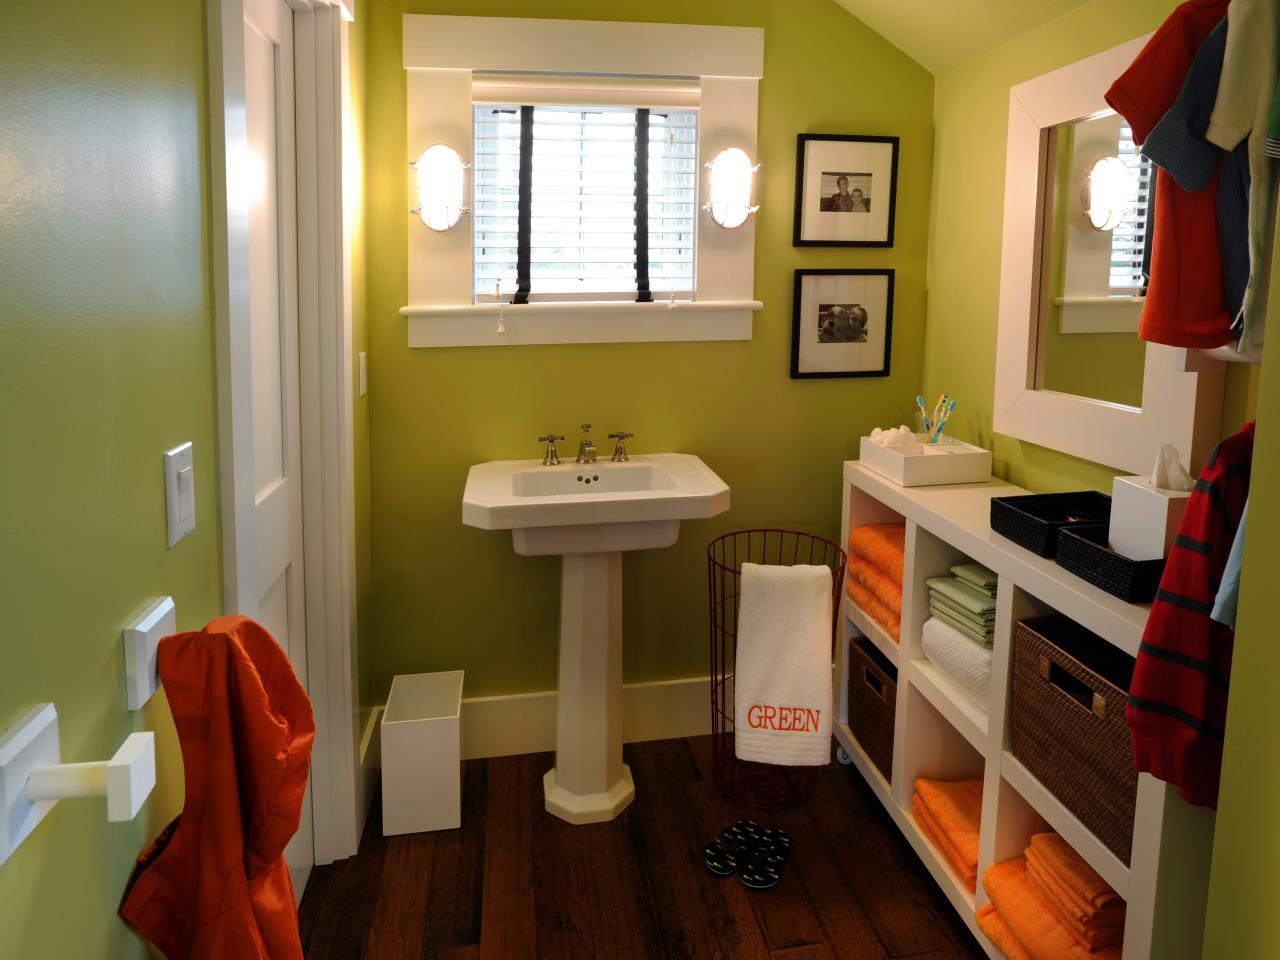 Superieur Chic Green Kids Bathroom Idea With White Furnishing And Wooden Flooring